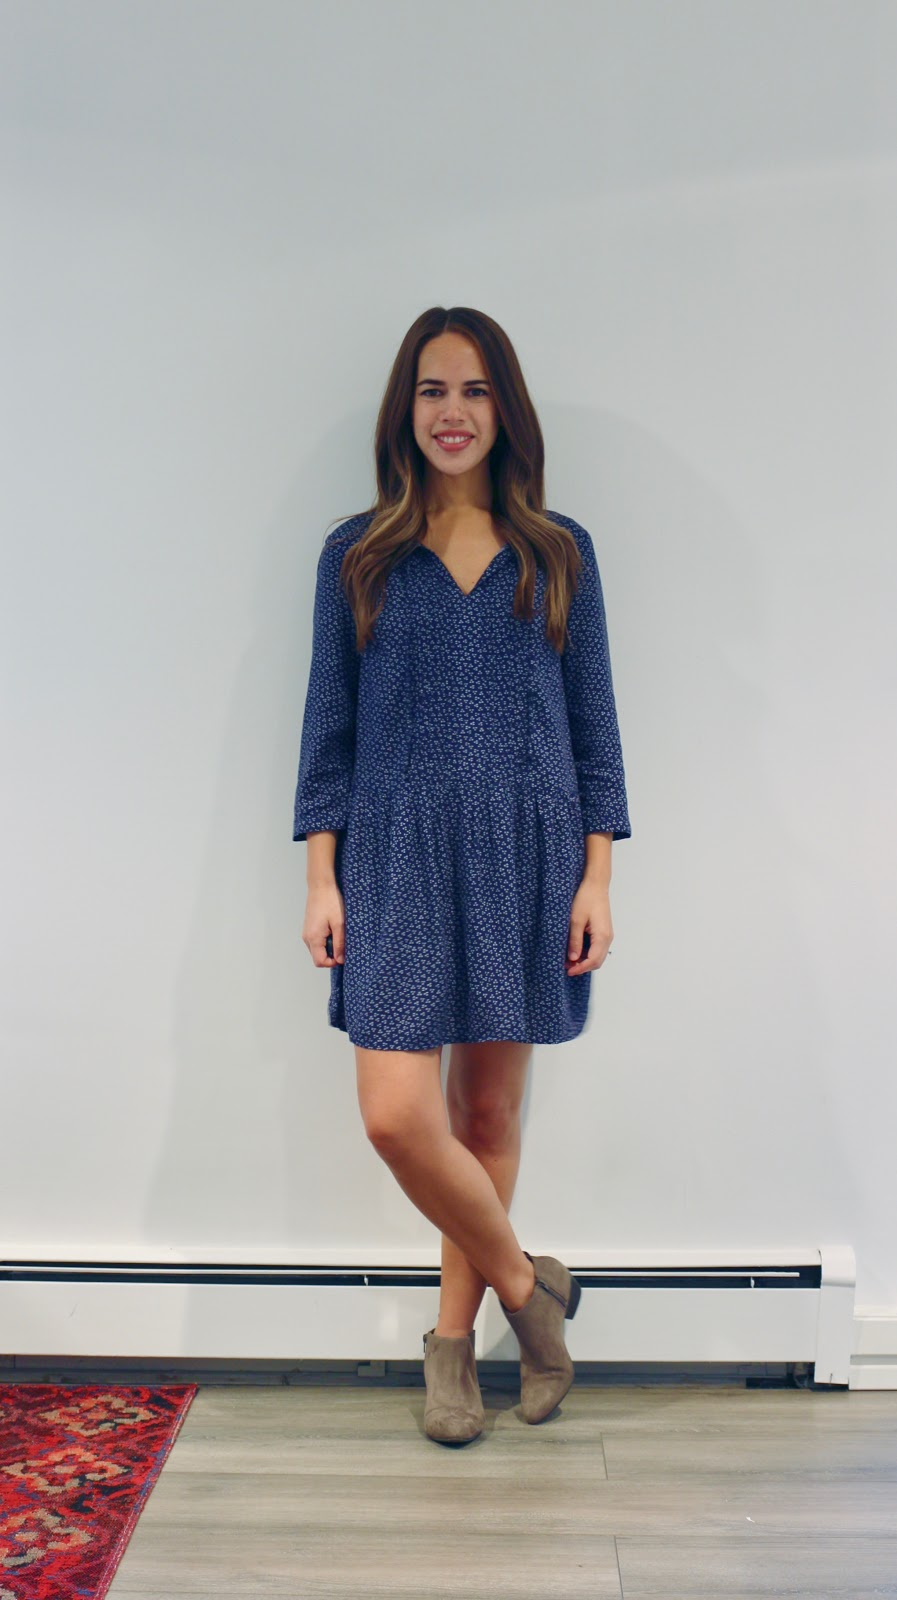 Jules in Flats - Tie Neck Printed Swing Dress (Business Casual Workwear on a Budget)